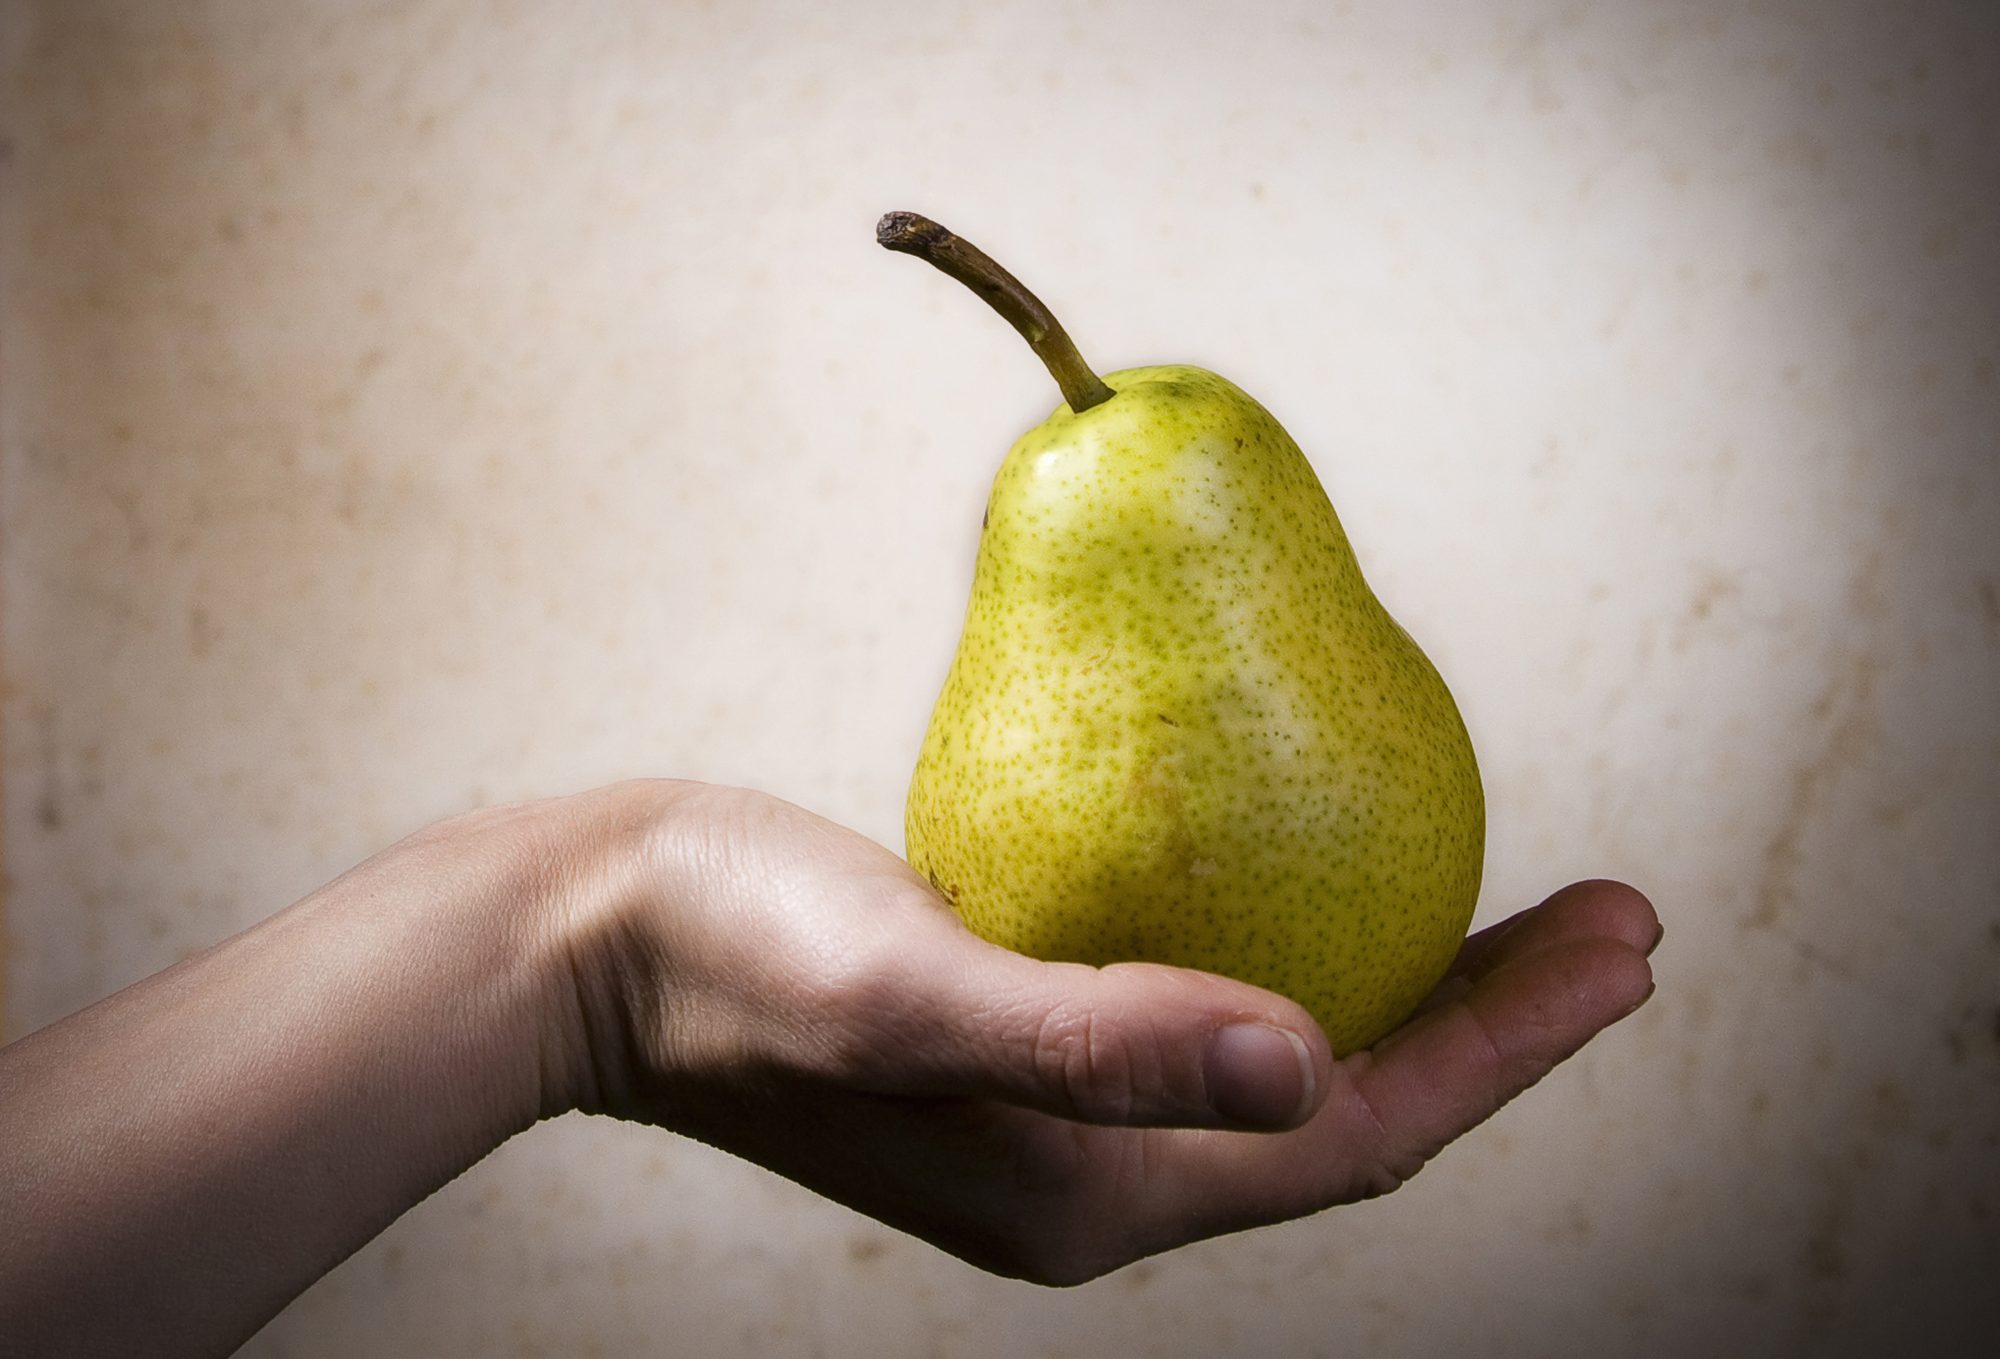 Pear in hand Getty 9/3/20